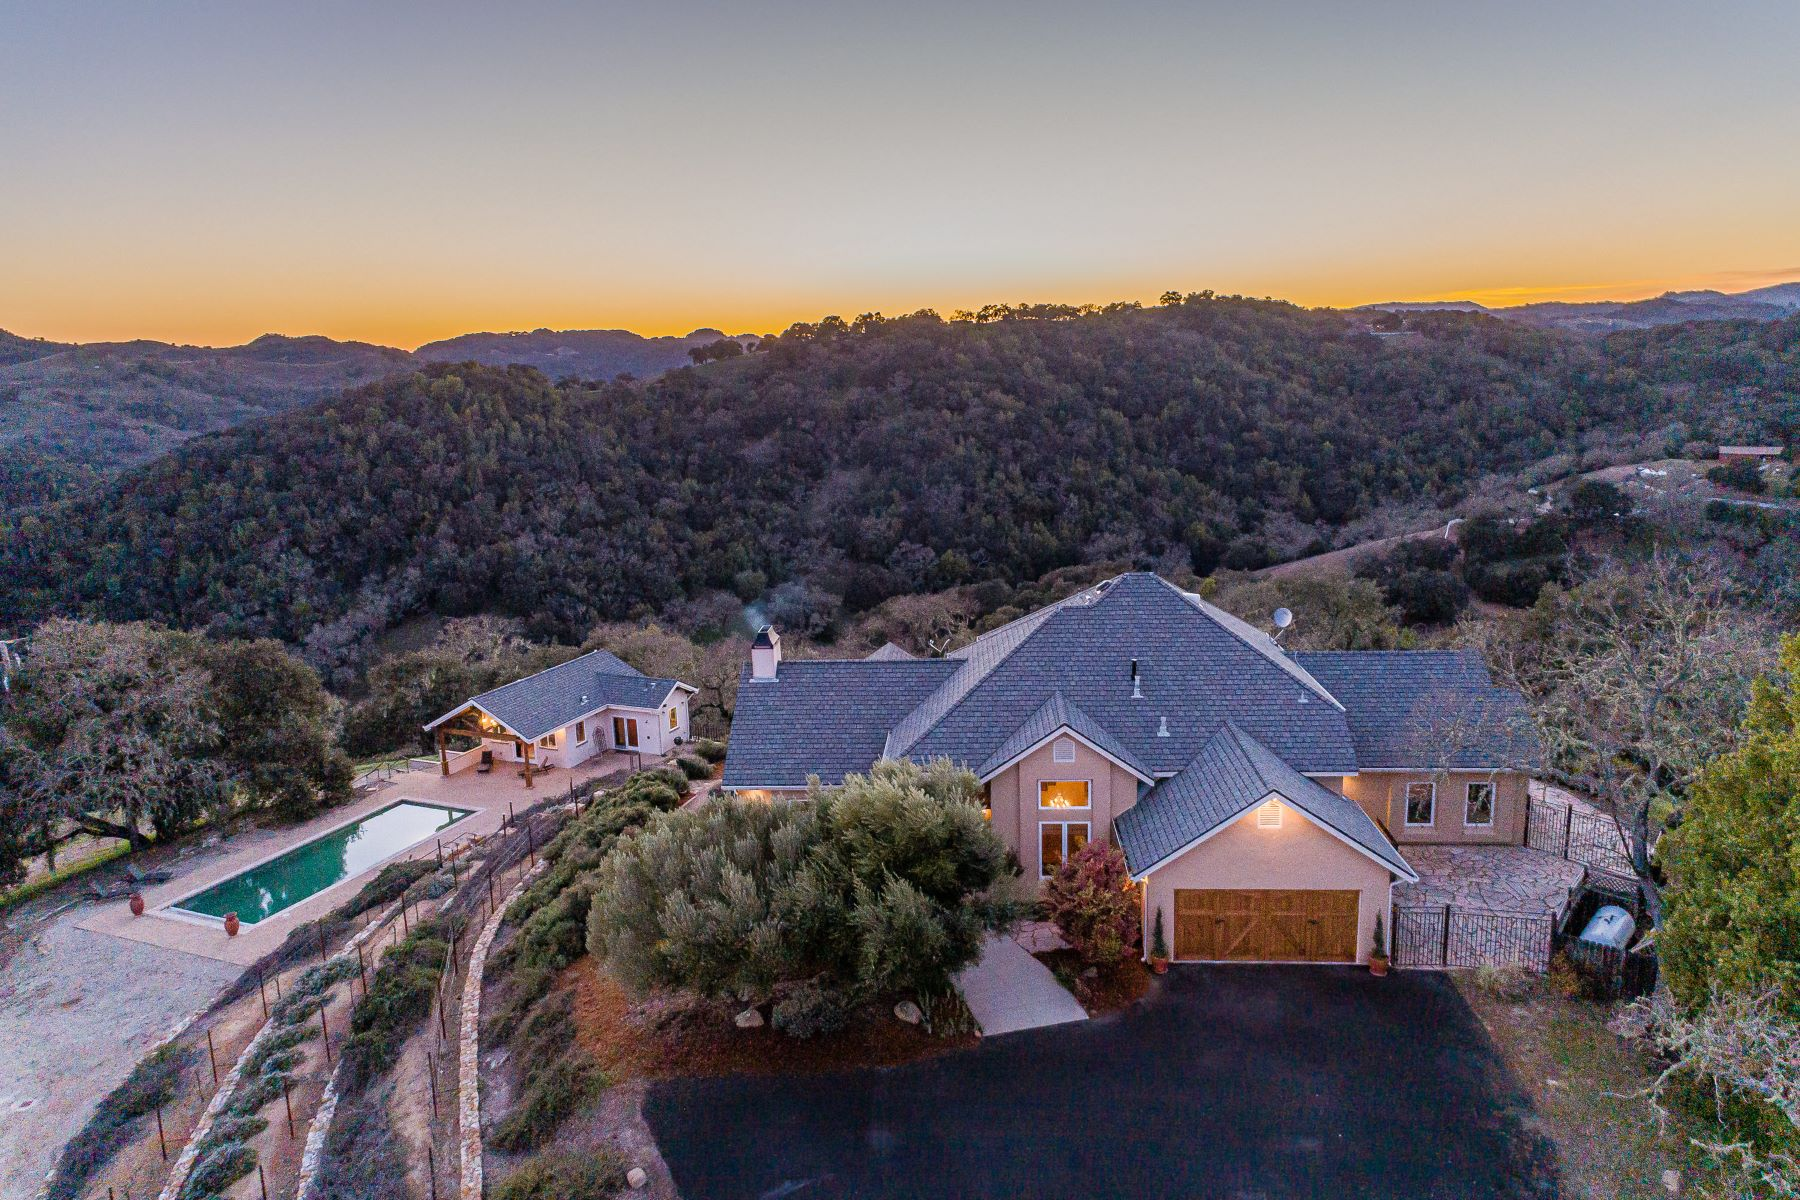 Single Family Homes for Sale at Rolling Hills & Quiet Sunsets 4678 Salt Creek Road Templeton, California 93465 United States